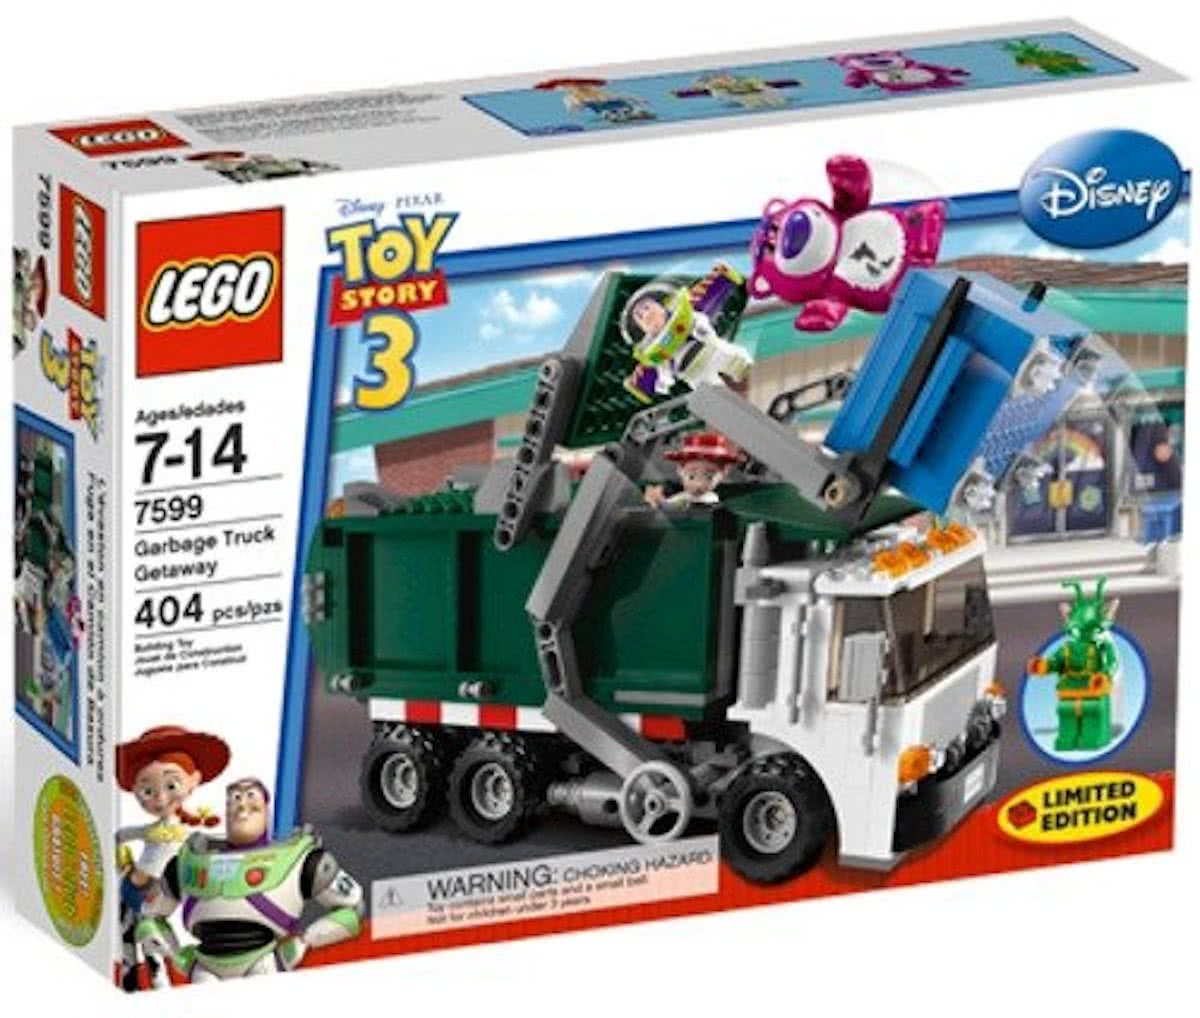 LEGO Toy Story 3 Vuilniswagen Ontsnapping - 7599